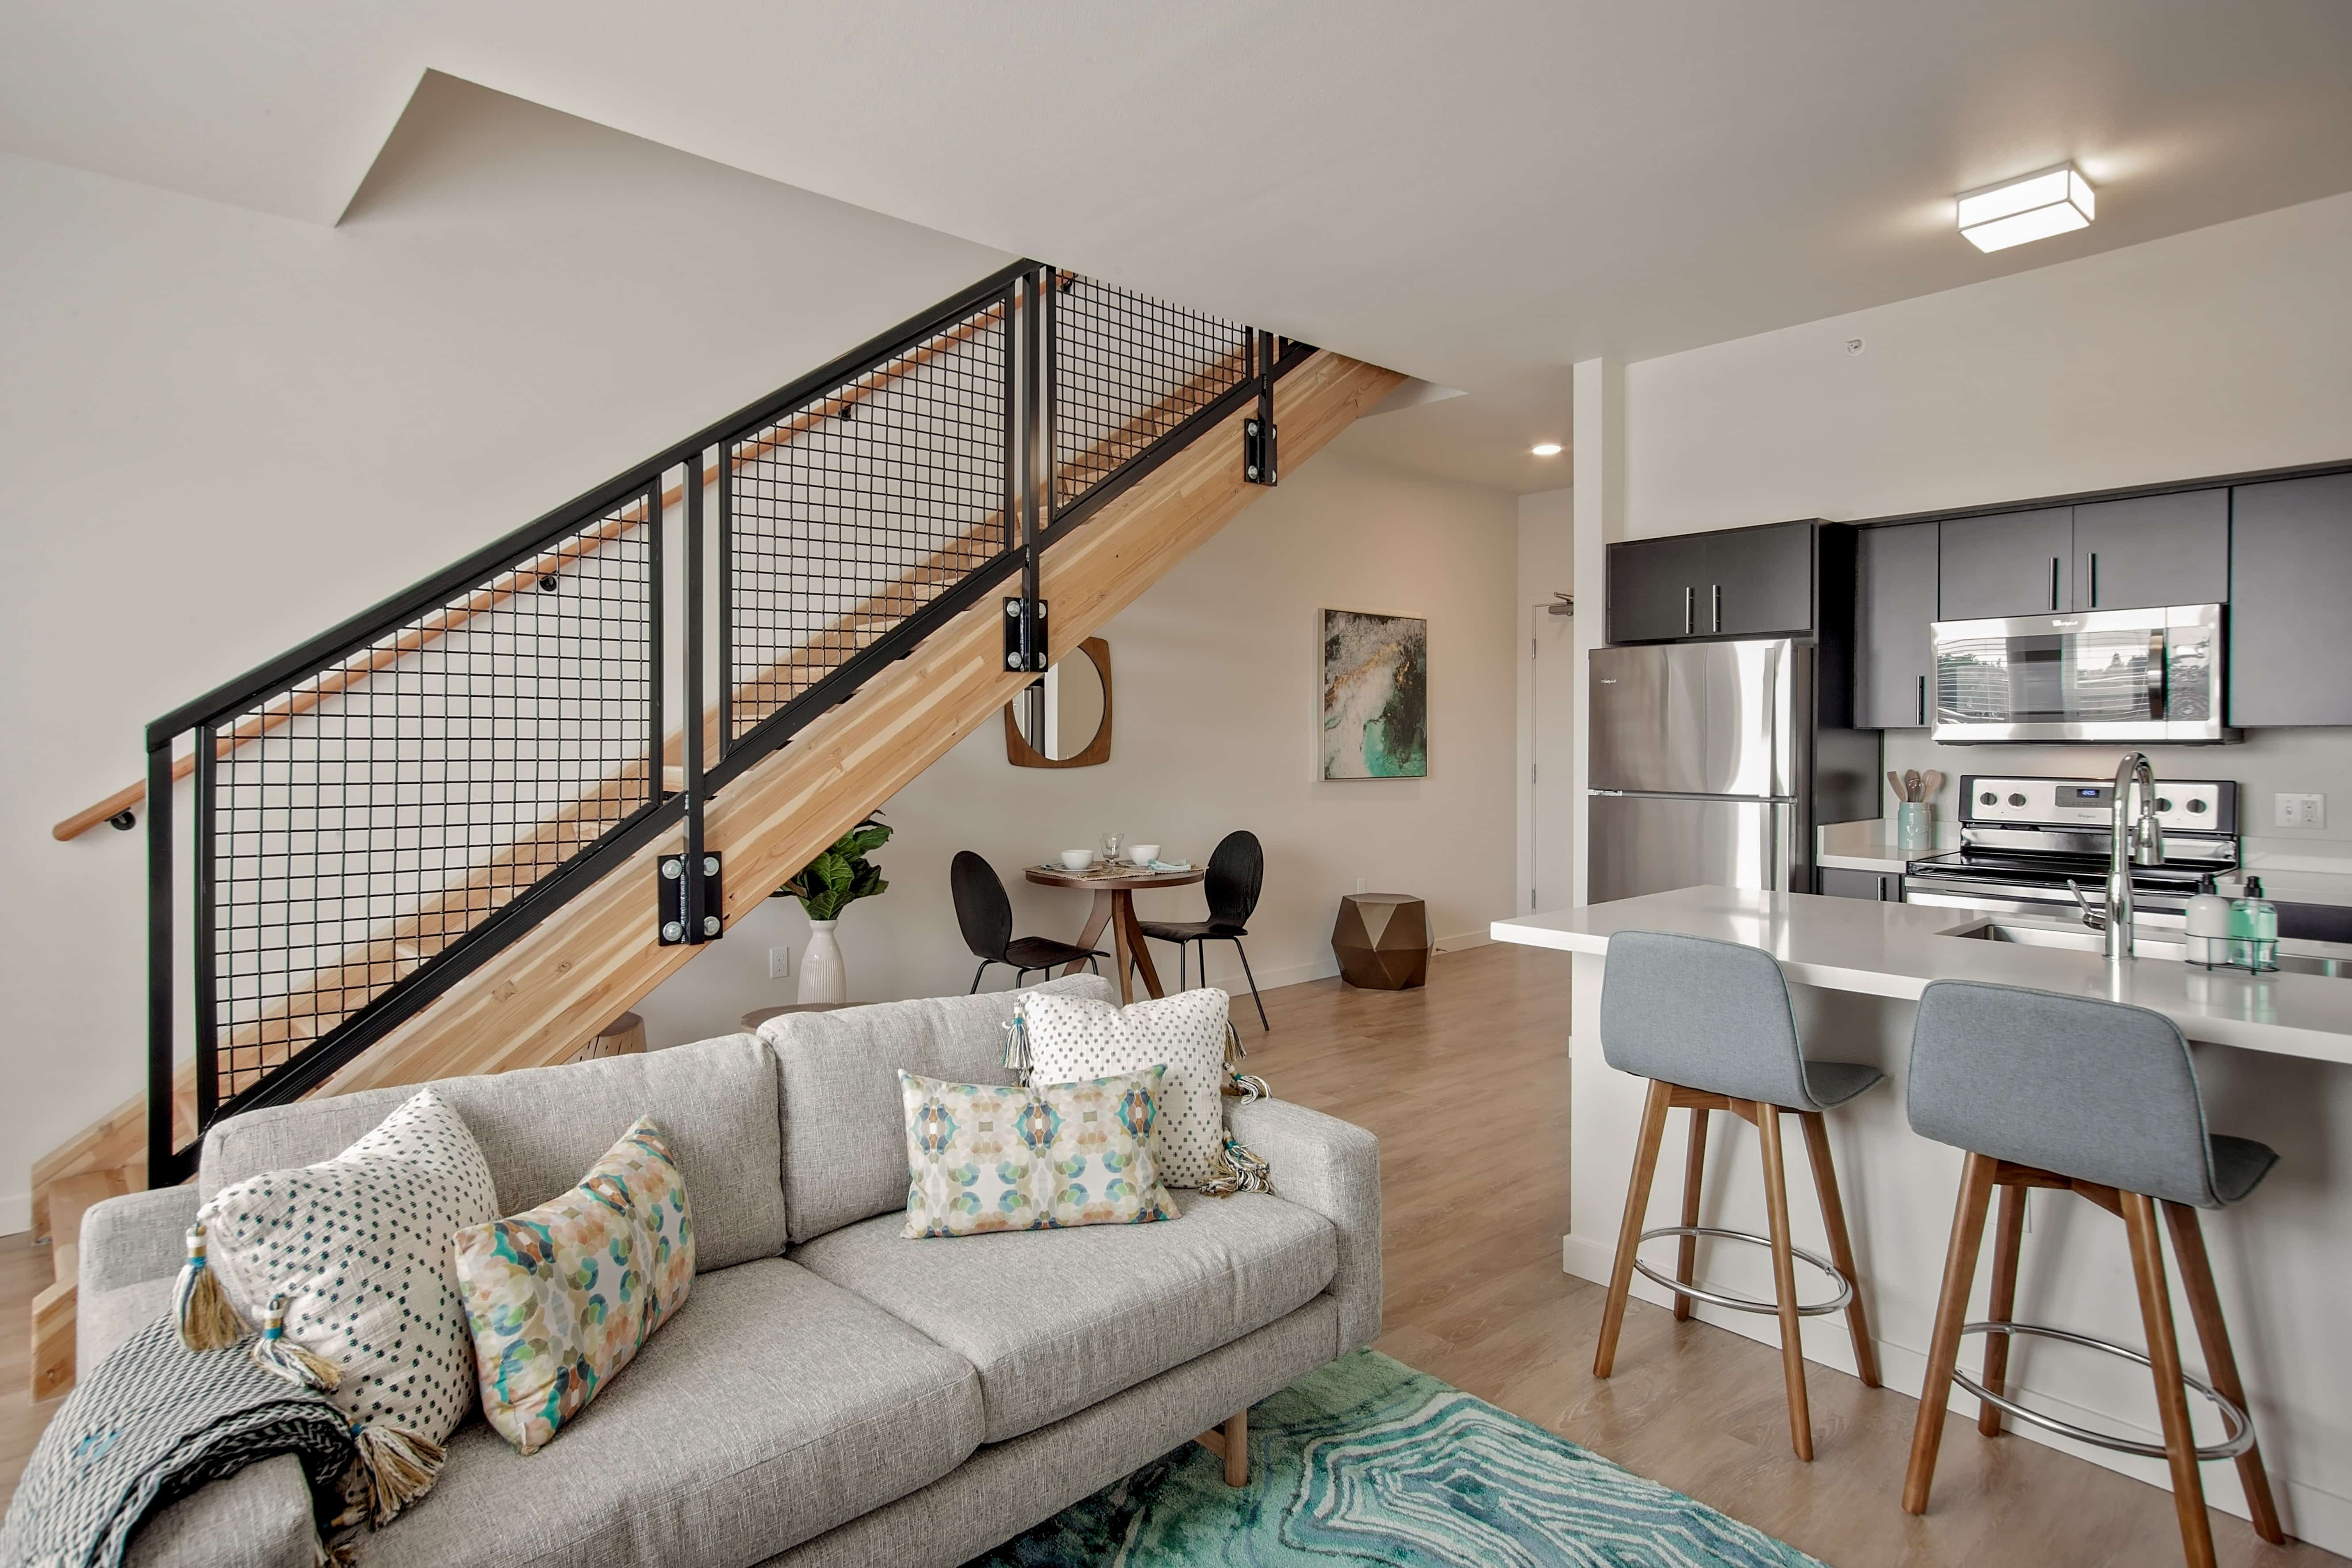 Modern studio, 1-, 2- and 3-bedroom apartments including townhome-style plans